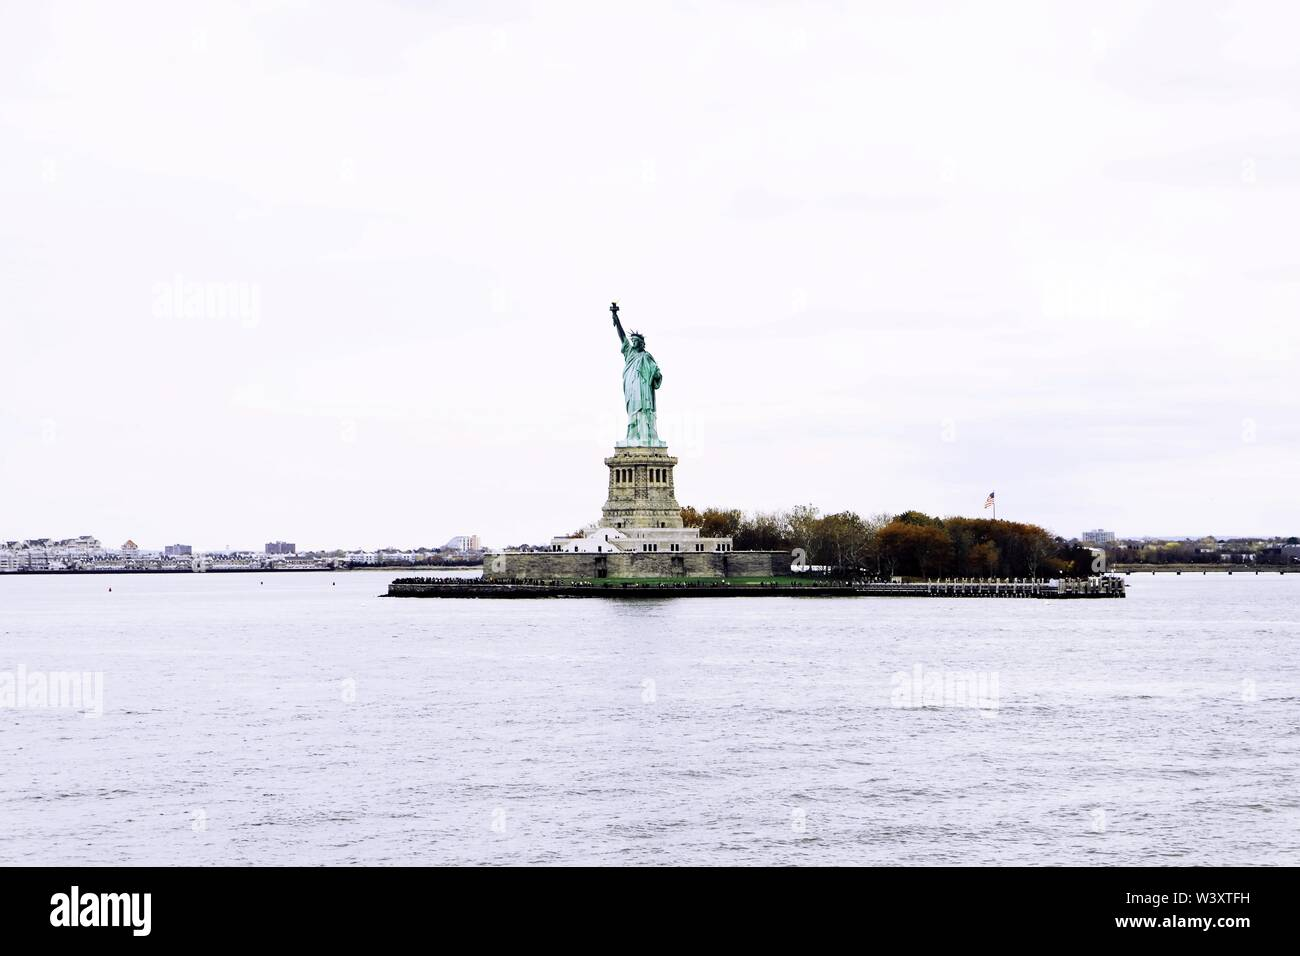 A distant wide shot of The Statue of Liberty with a clear white sky in the background - Stock Image